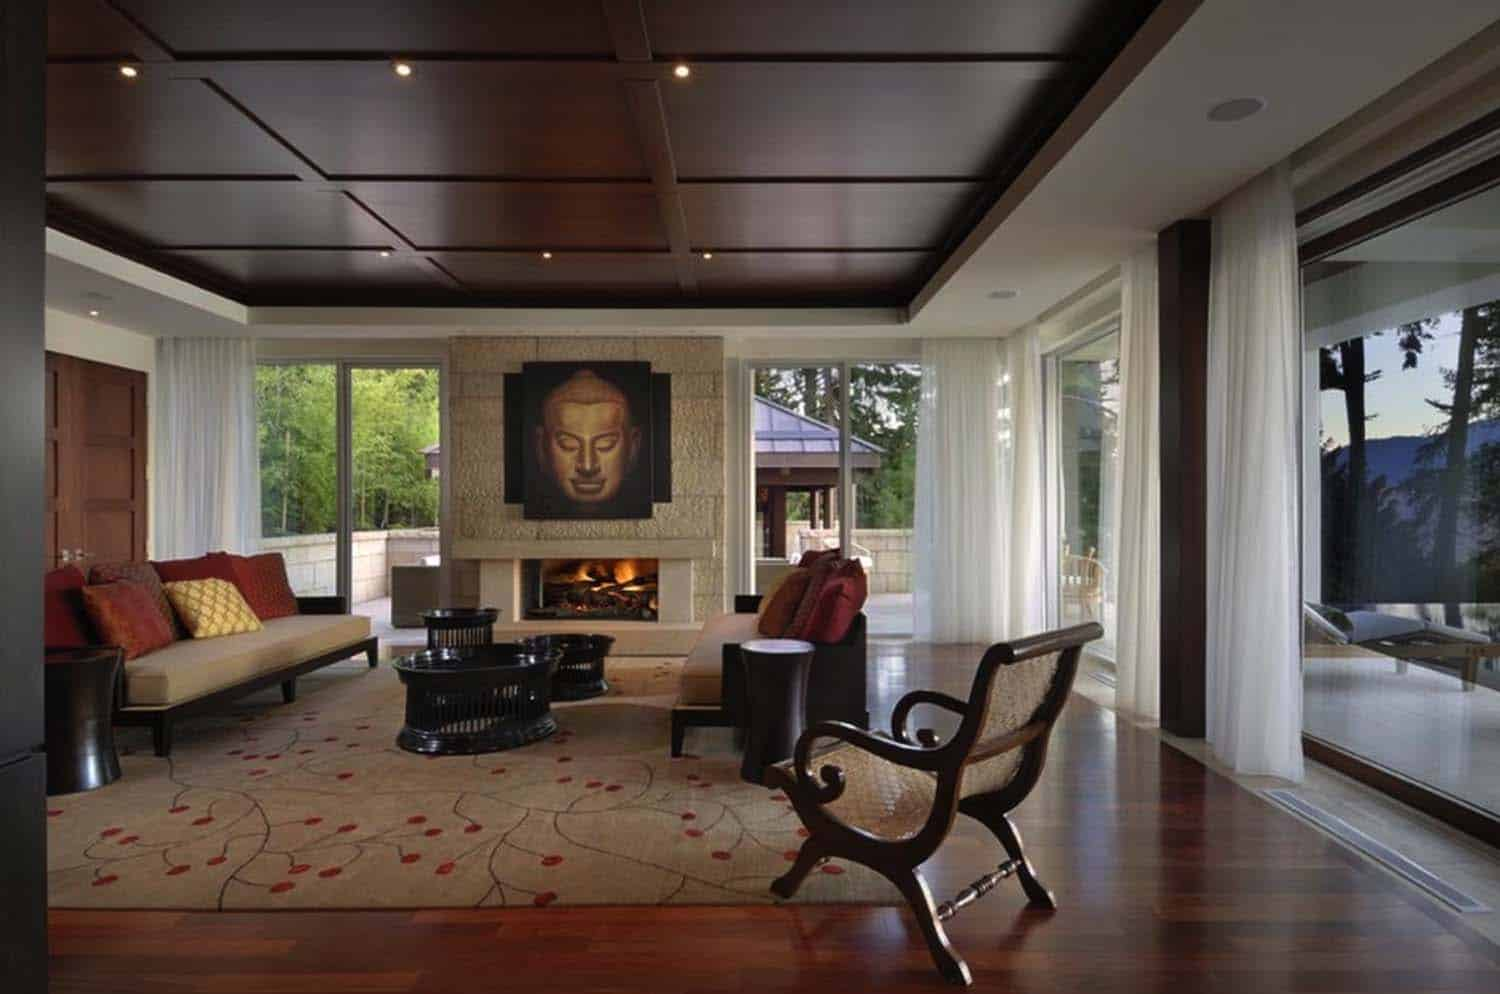 vancouver-island-residence-mckinley-burkart-architects-08-1-kindesign